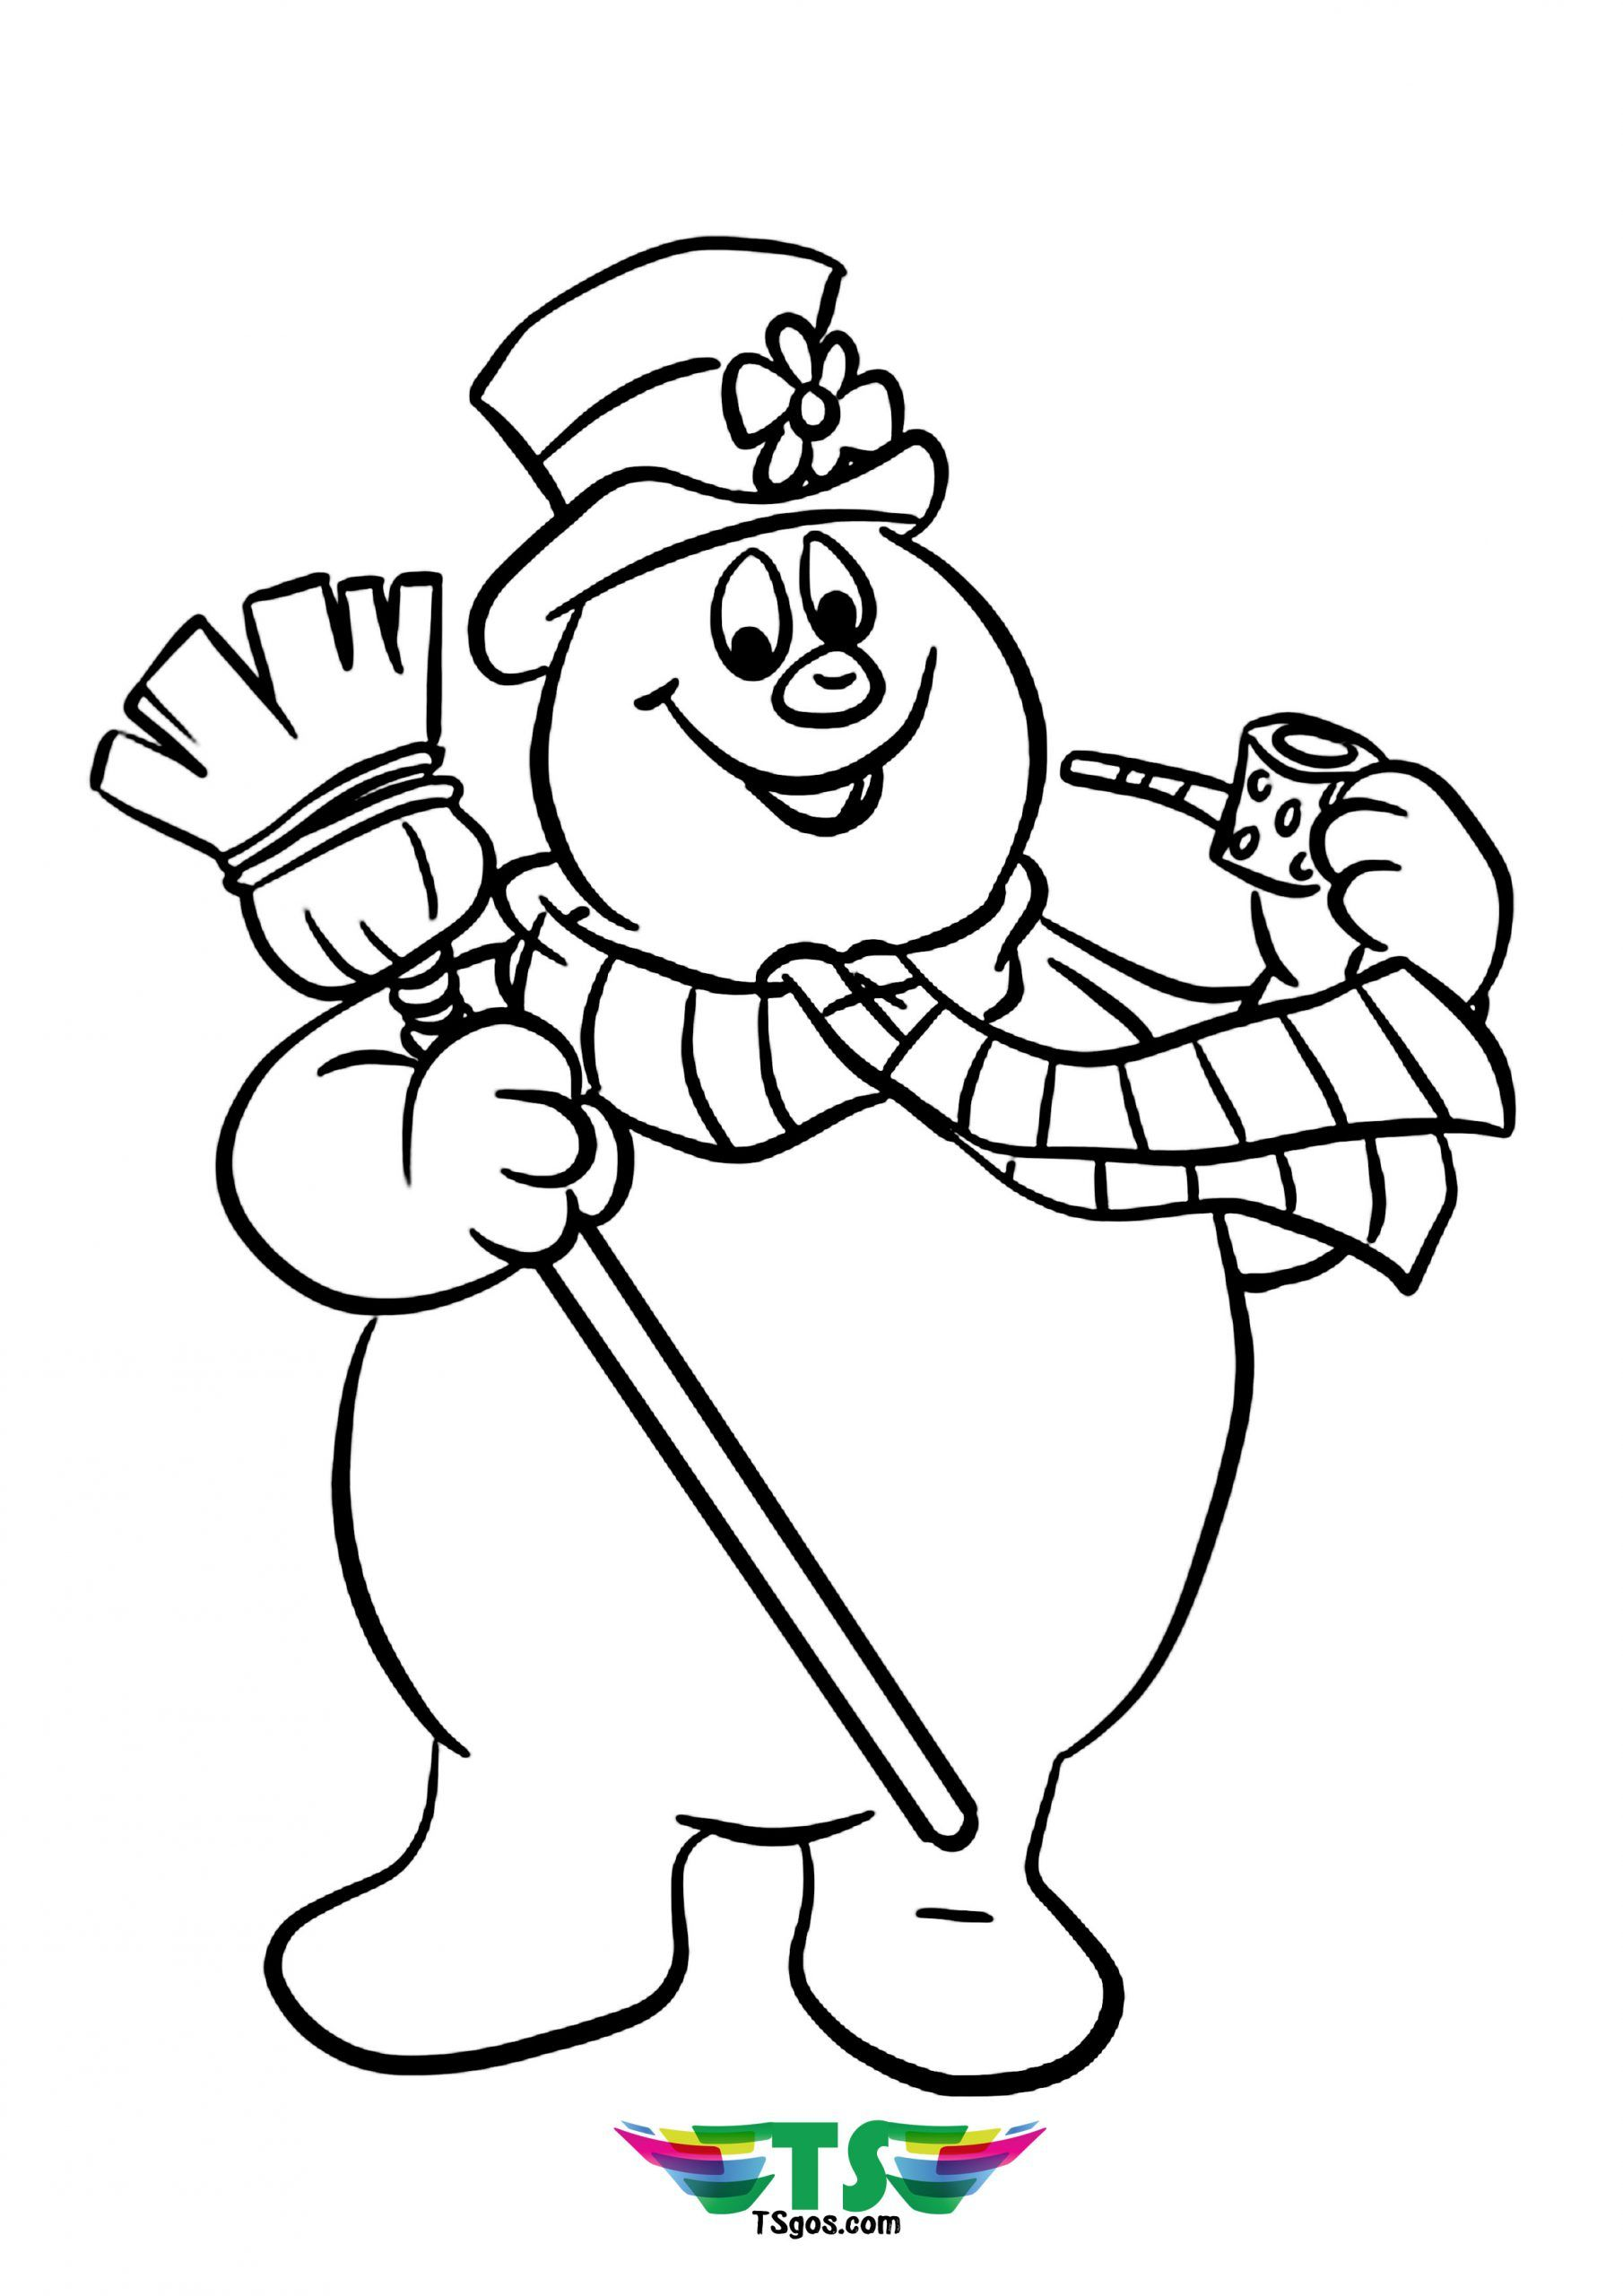 Kids Frosty The Snowman Tsgos Coloring Page Snowman Coloring Pages Printable Christmas Coloring Pages Cartoon Coloring Pages